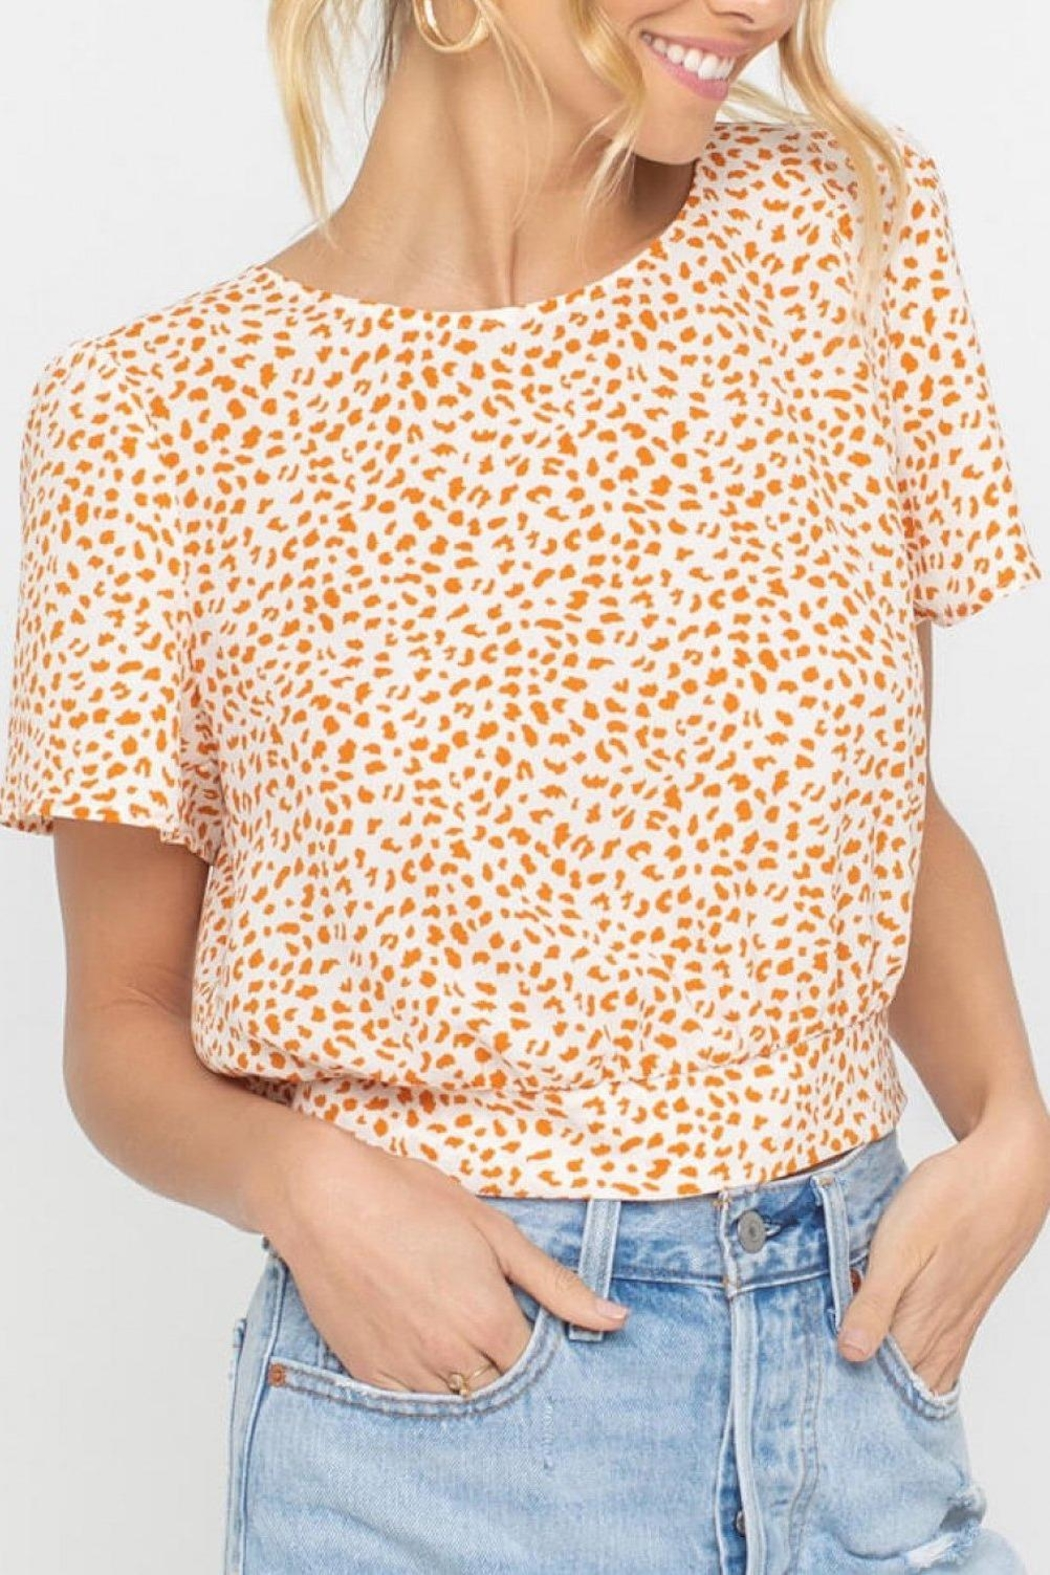 Lush Clothing  Tangerine Dotted Back-Tie-Top - Main Image